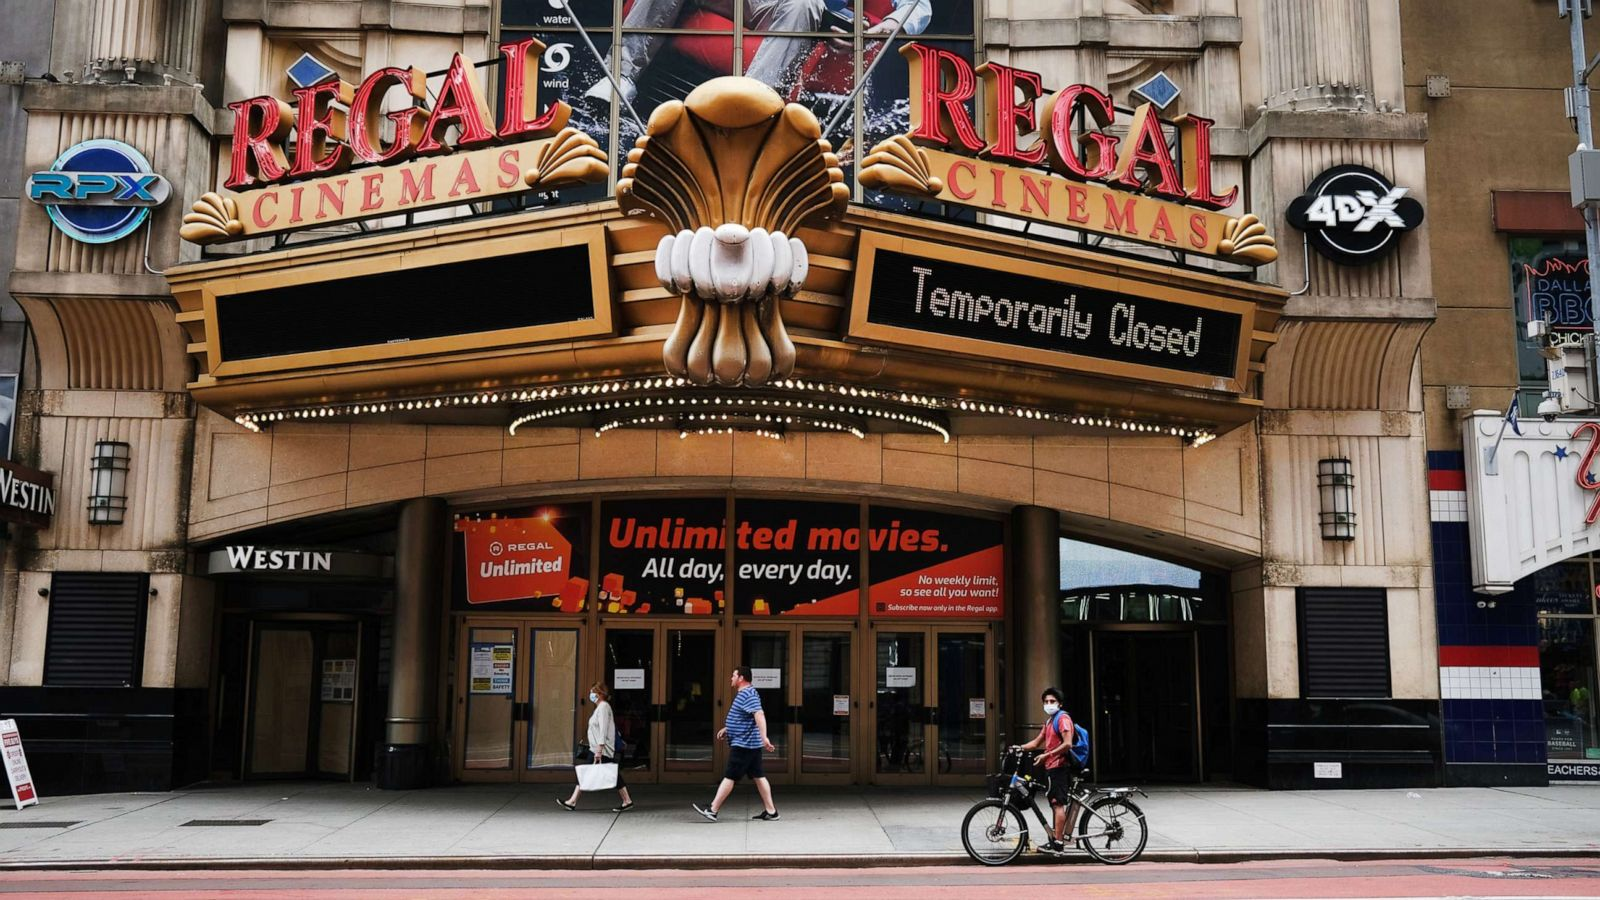 Regal Cinemas to temporarily shutter all US theaters as pandemic rages on - ABC News